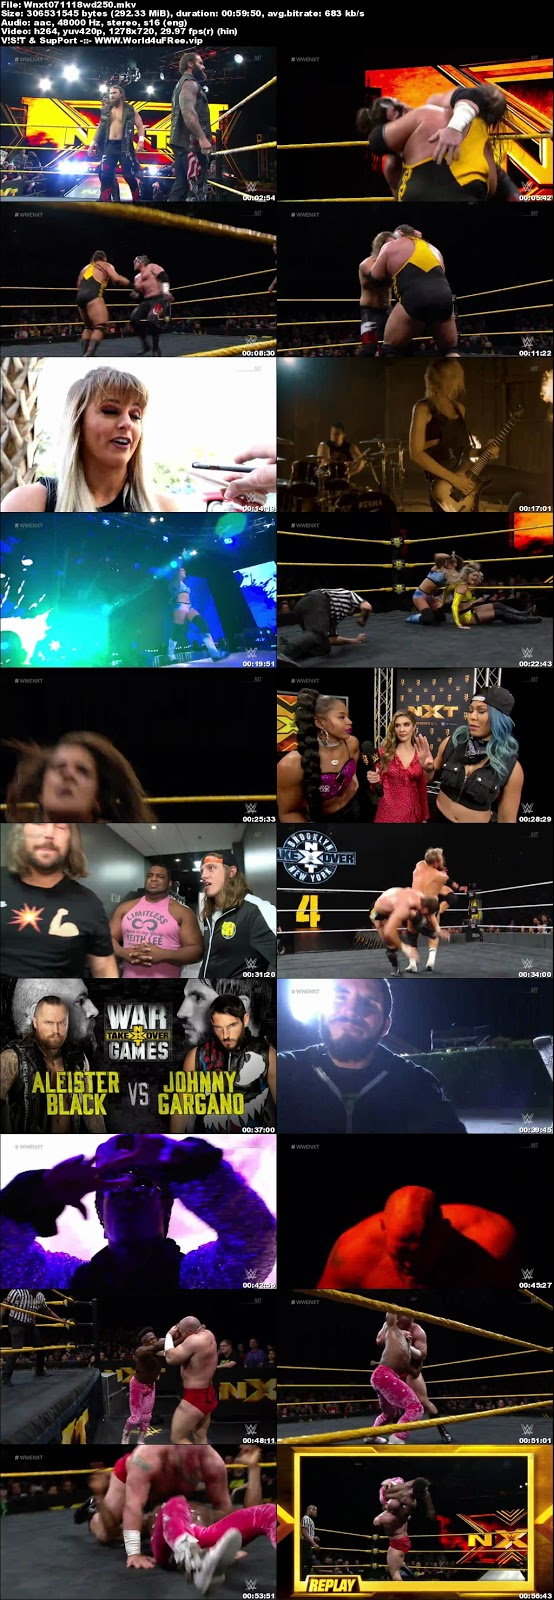 WWE NXT 07 November 2018 720p WEBRip 250MB x264 hollywood tv show wwe show WWE NXT 26 April 2017 200mb compressed small size free download or watch online at world4ufree.vip